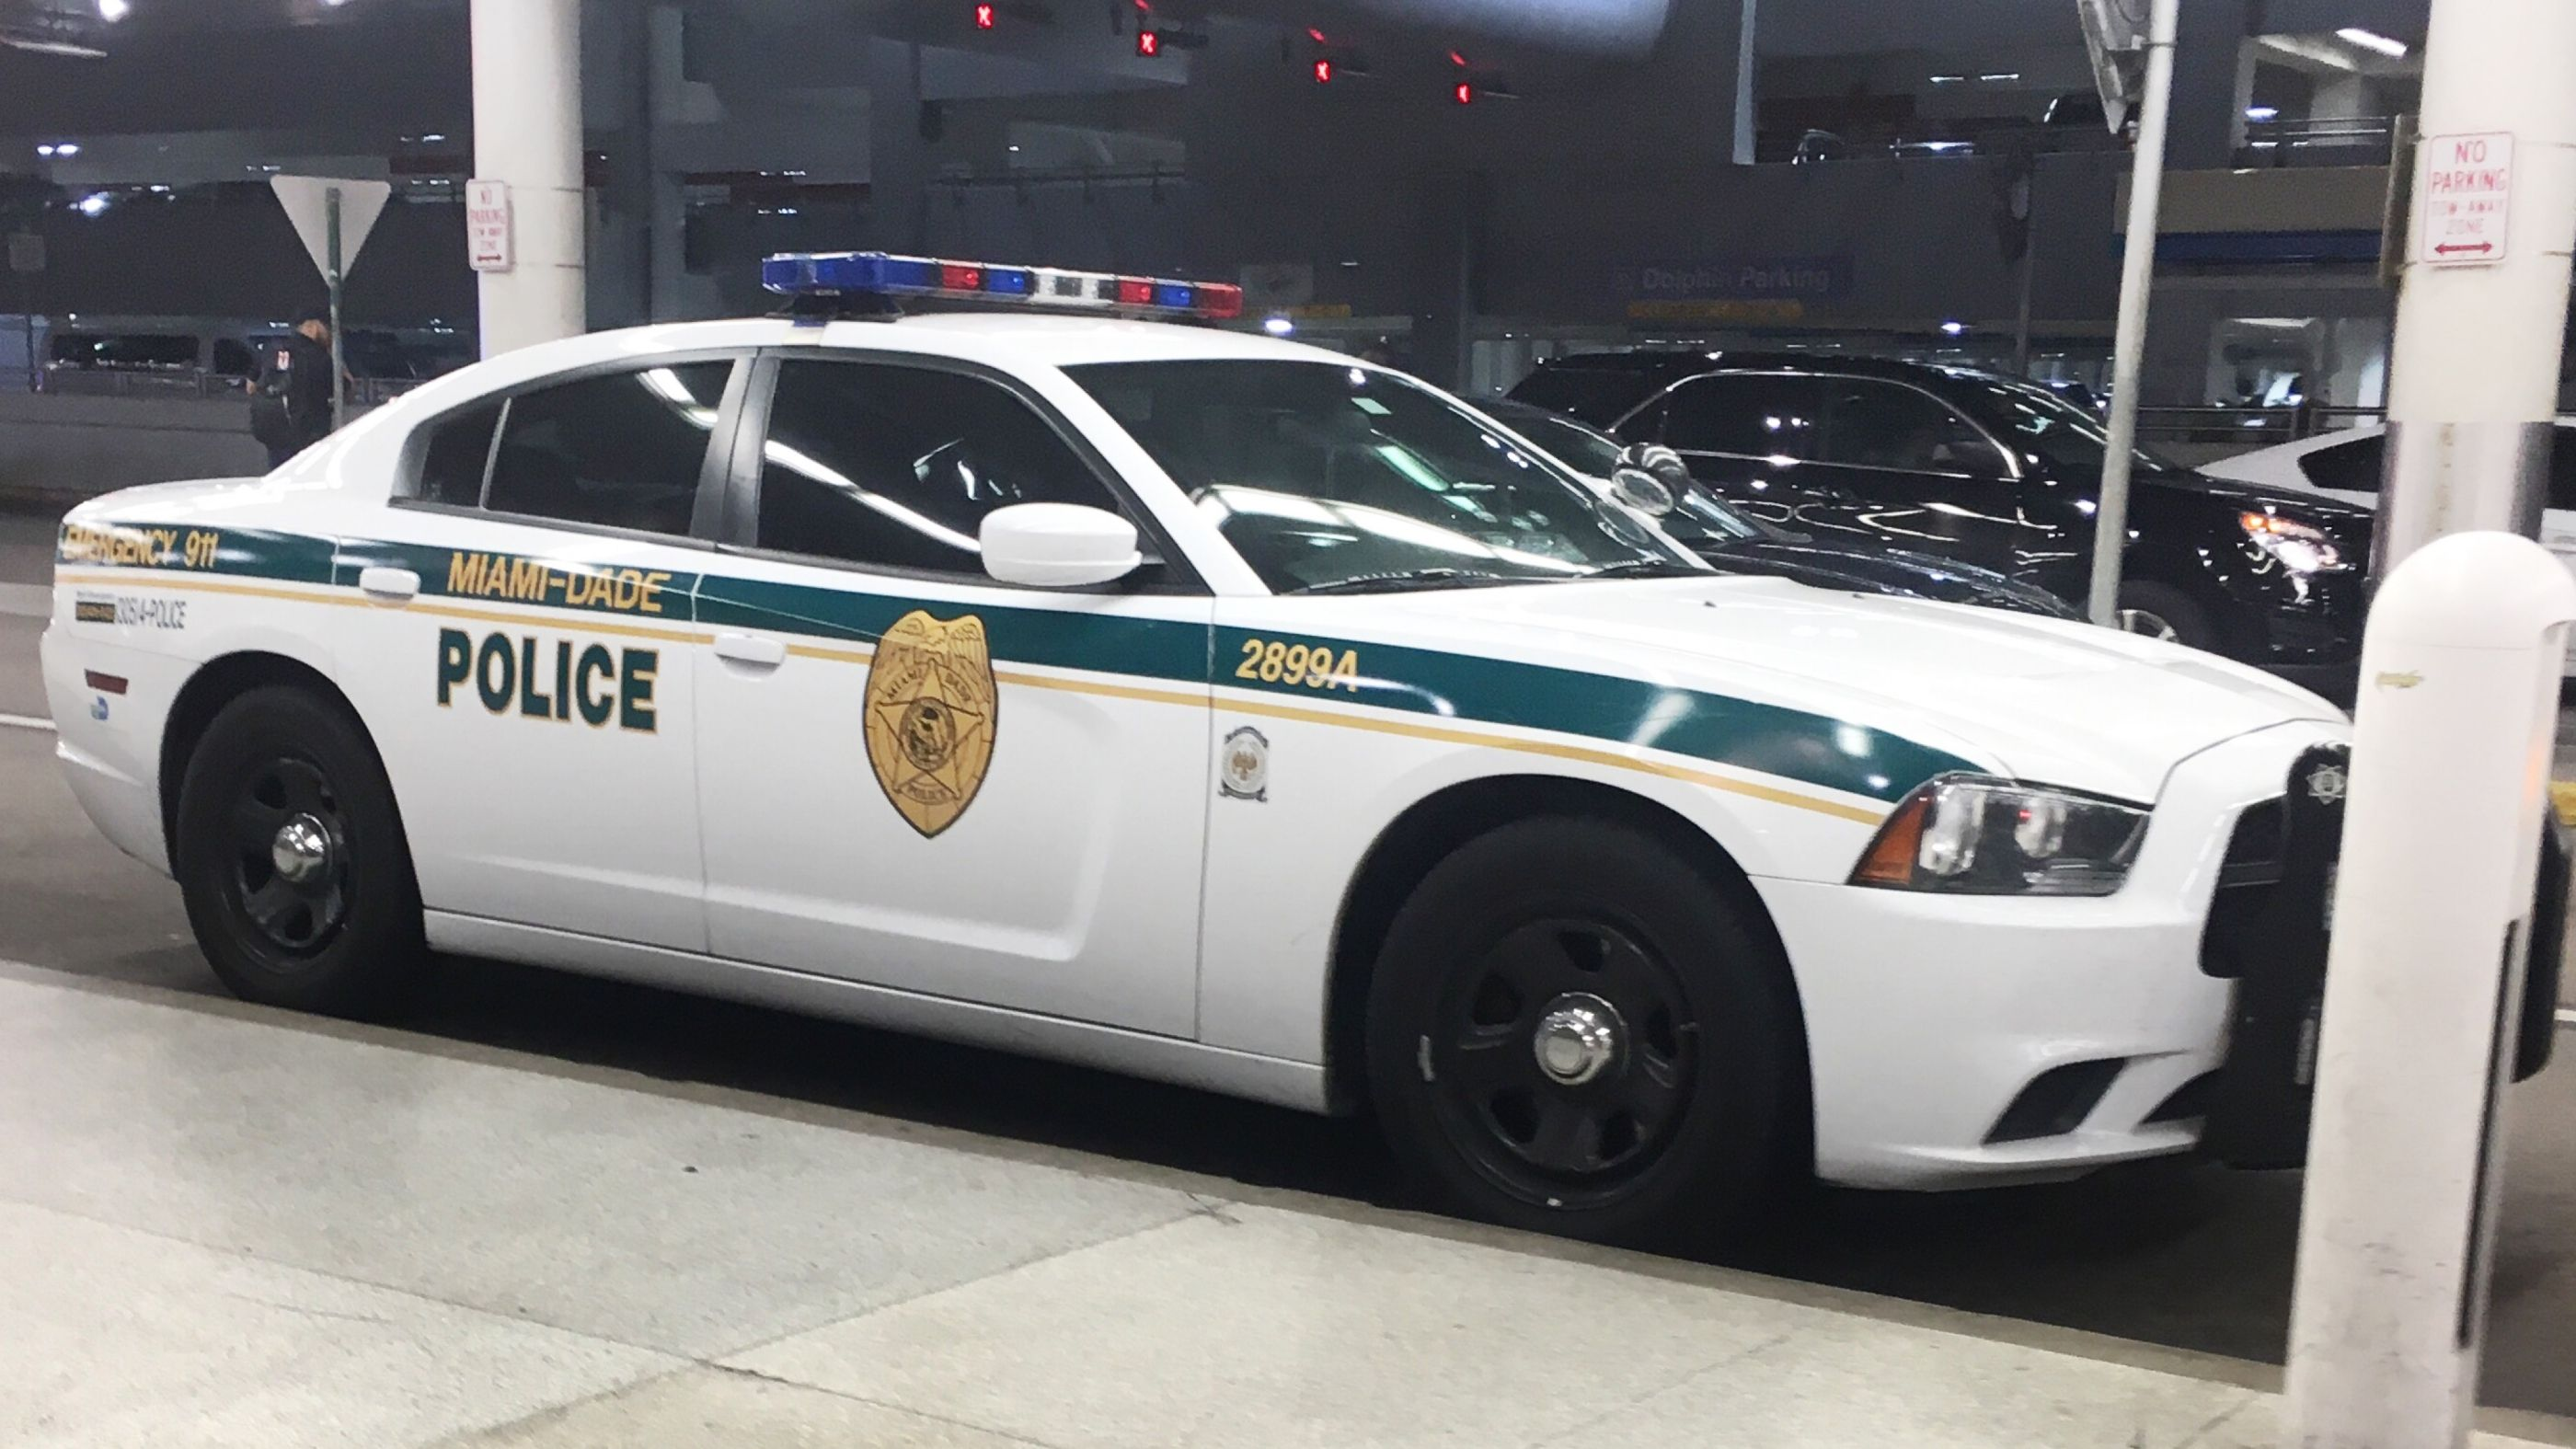 Miami Dade Florida 2012 Dodge Charger Police Cars Emergency Vehicles Ford Police